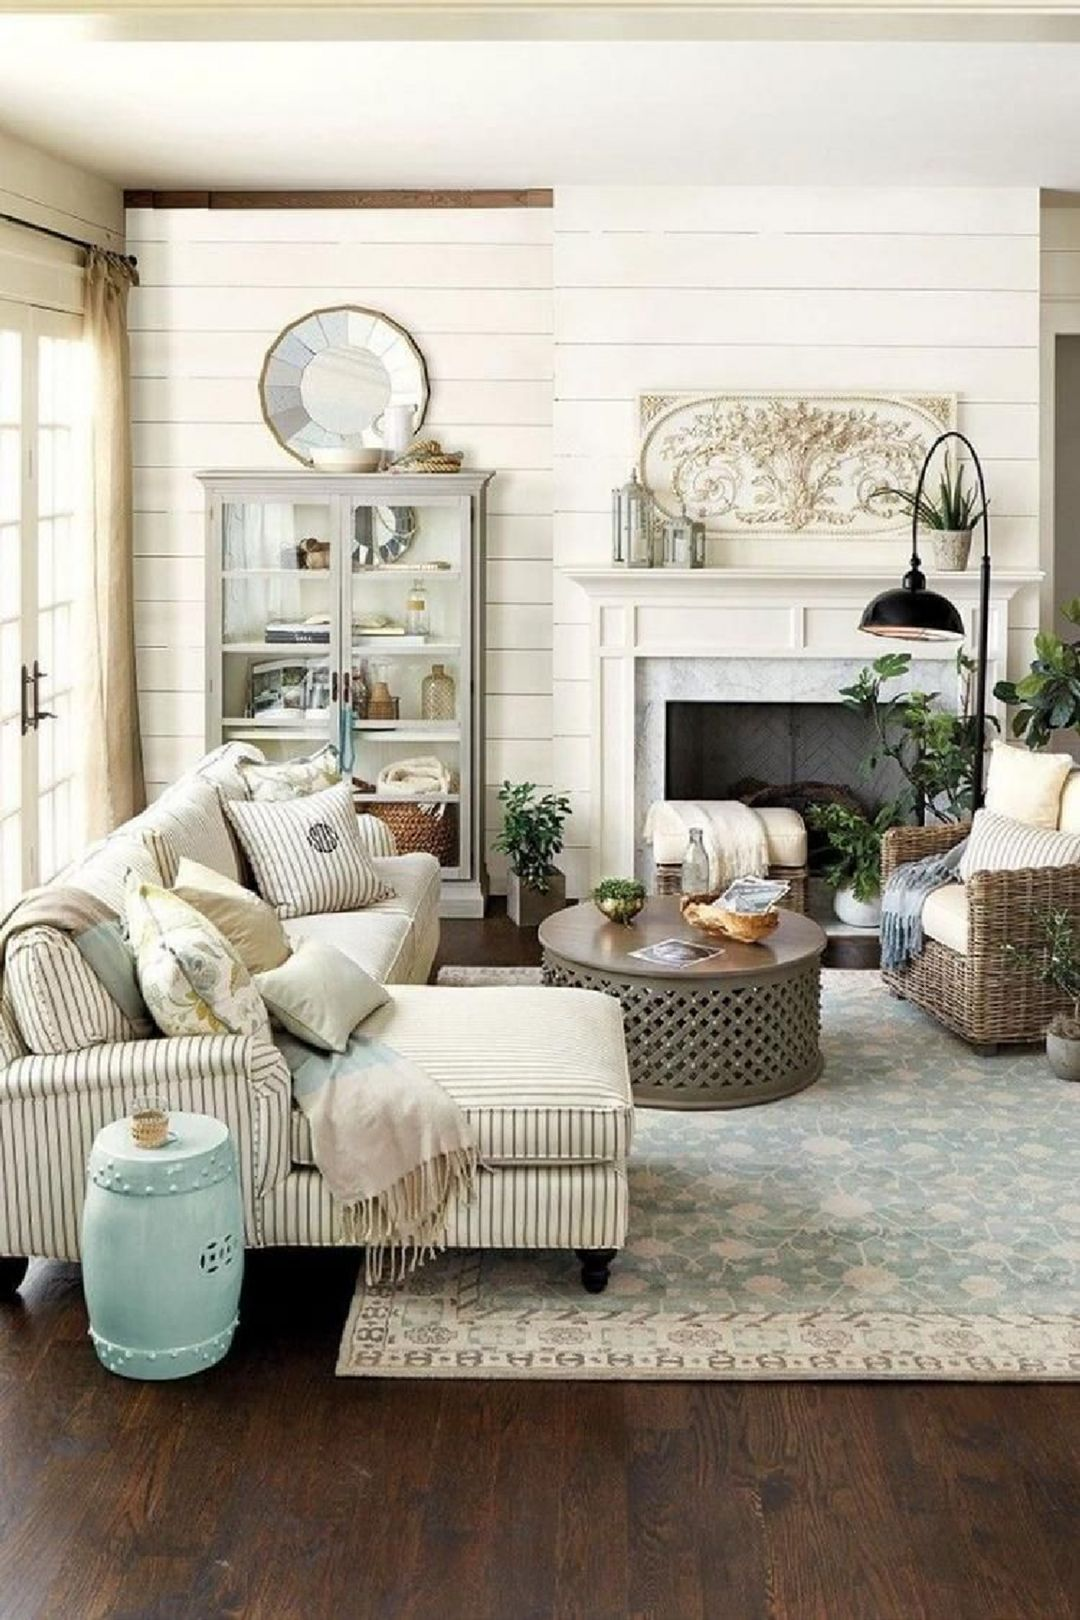 20 amazing small living room designs for your home farm on amazing inspiring modern living room ideas for your home id=31198